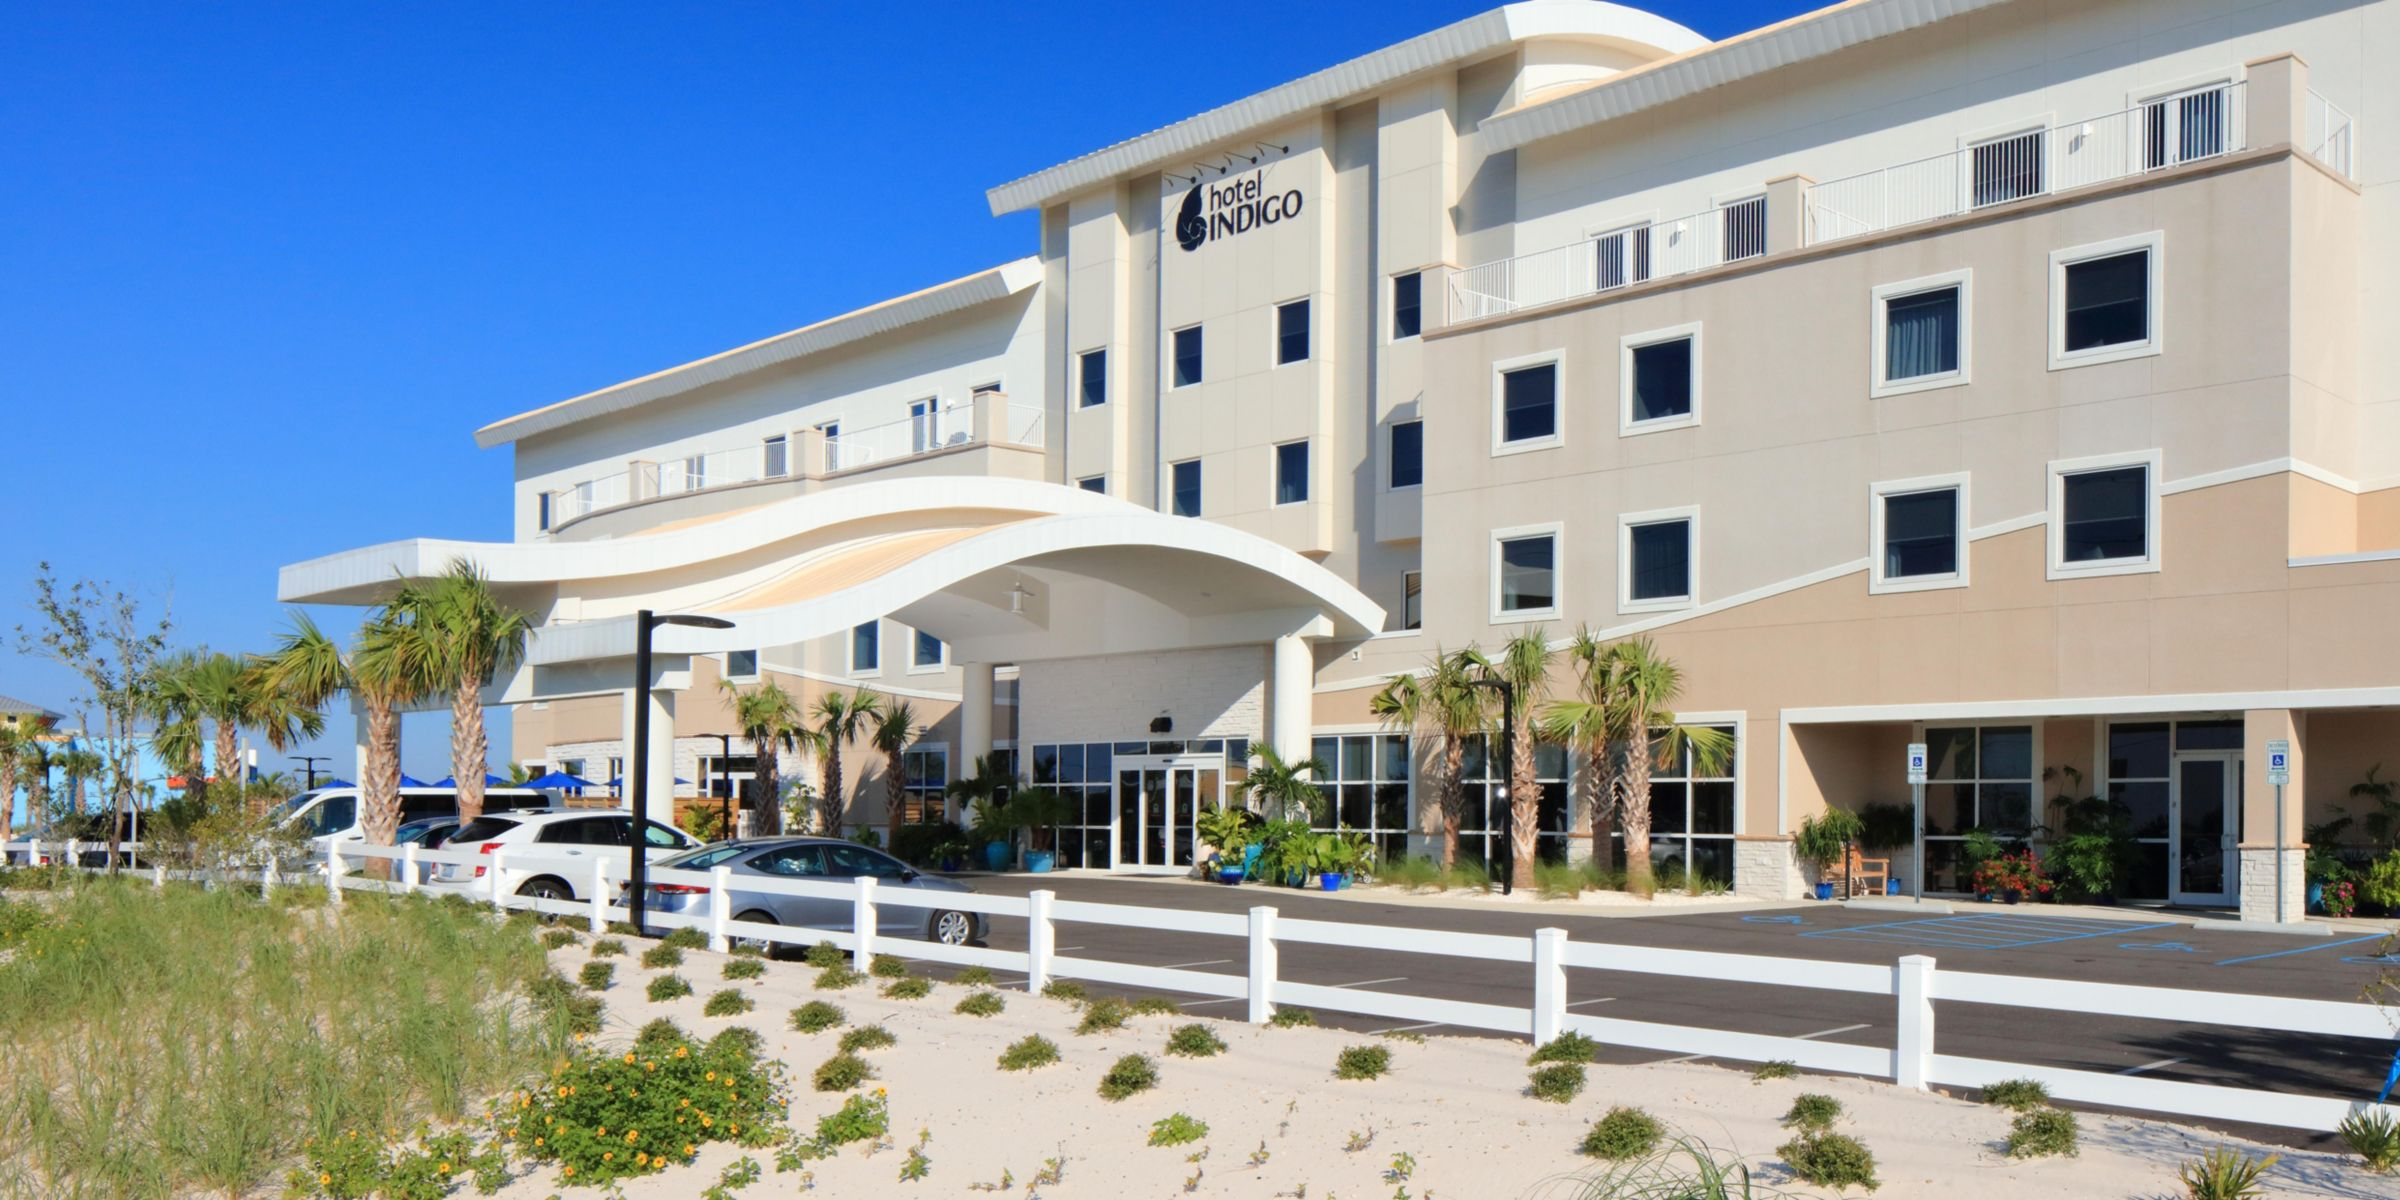 Best Western Hotel On The Beach Gulf Shores